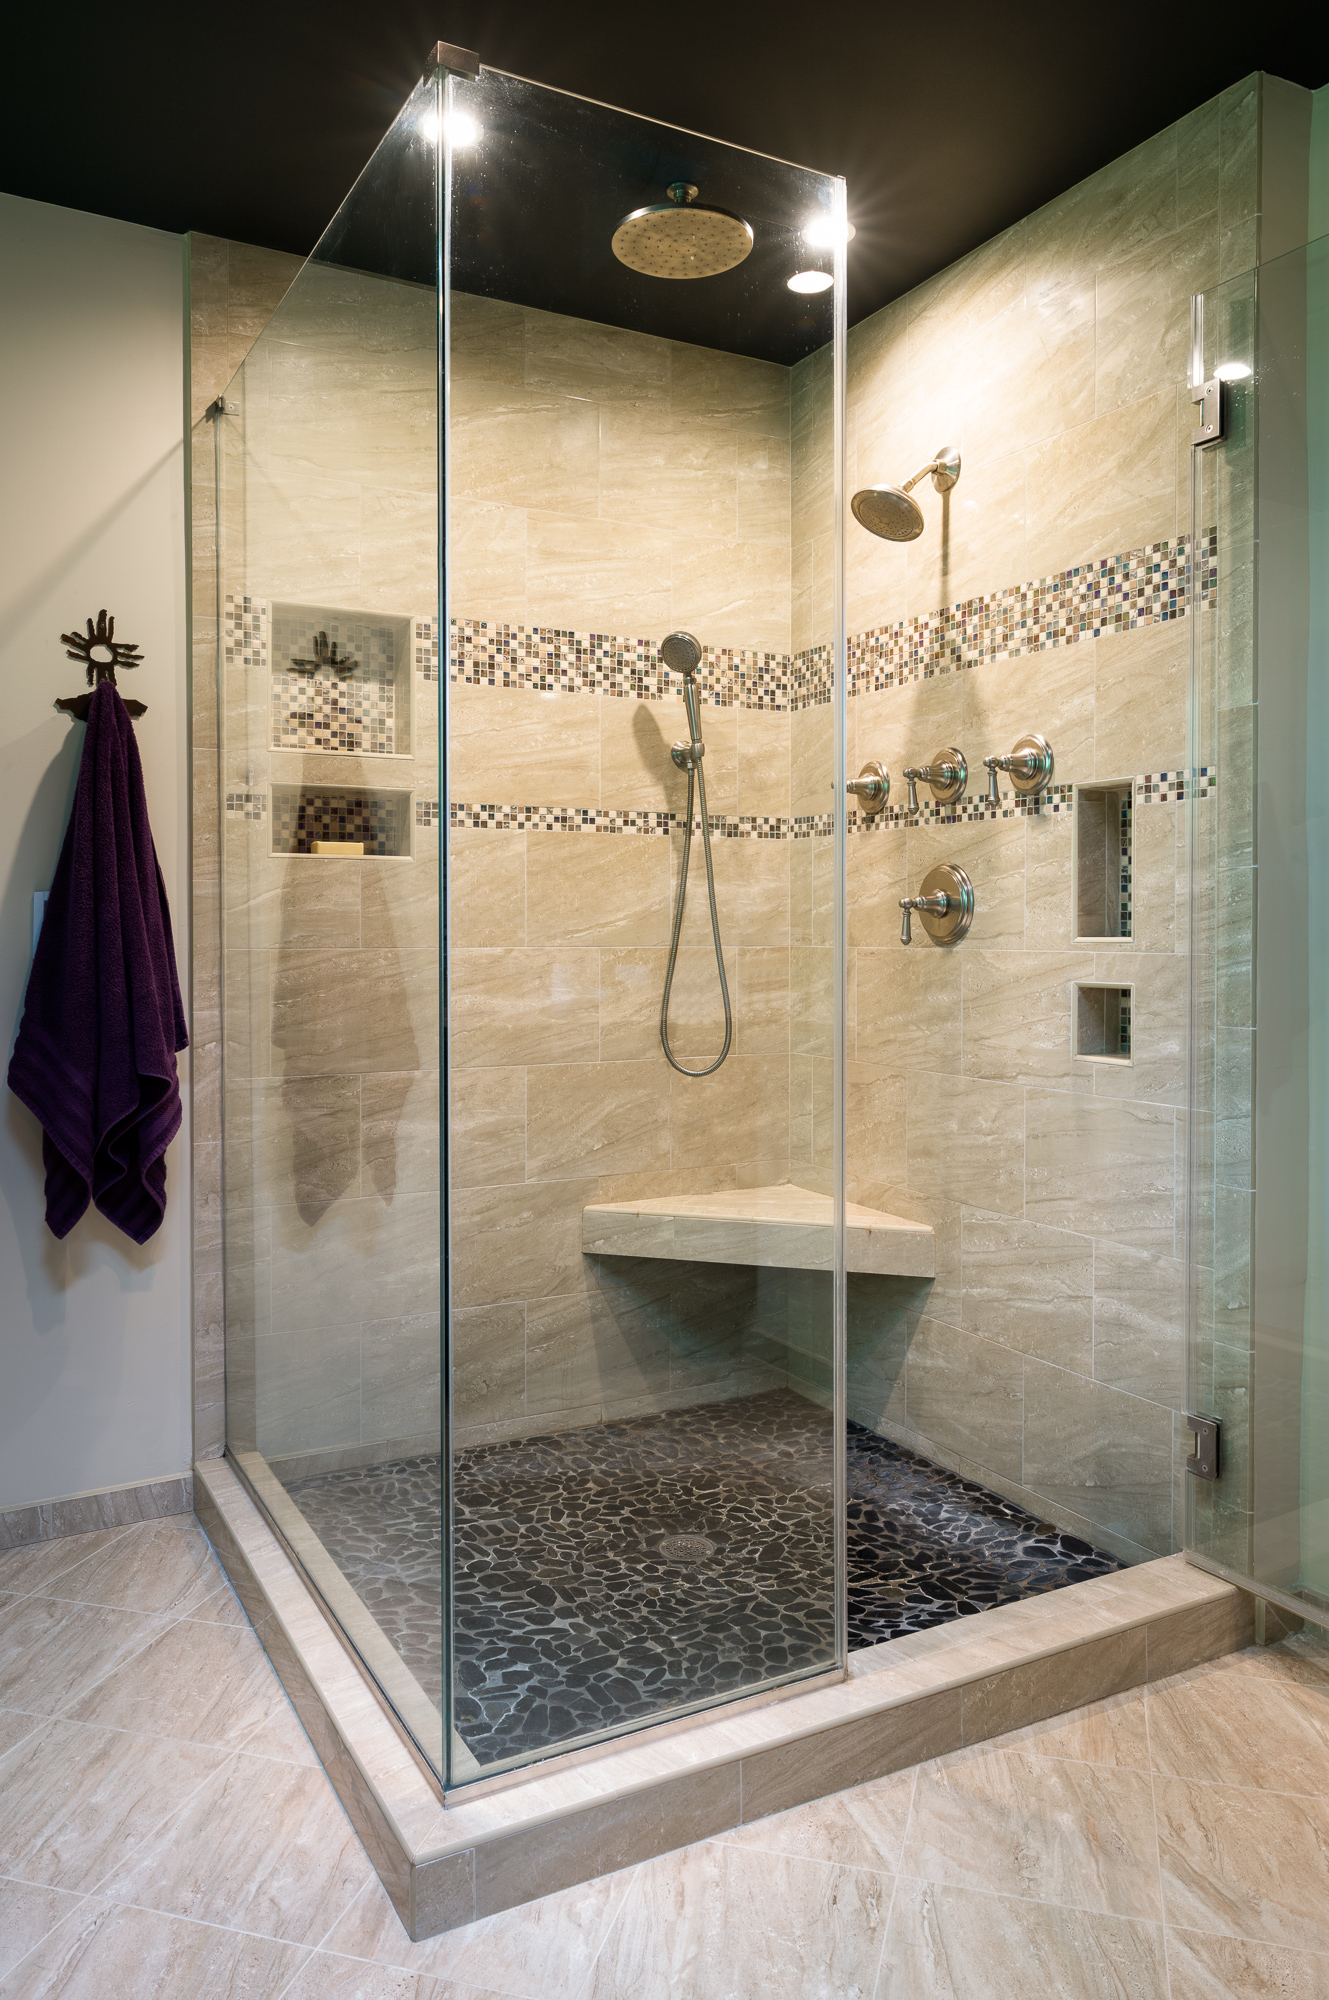 After  - A separate rain shower and hand-held shower provide maximum enjoyment and functionality.